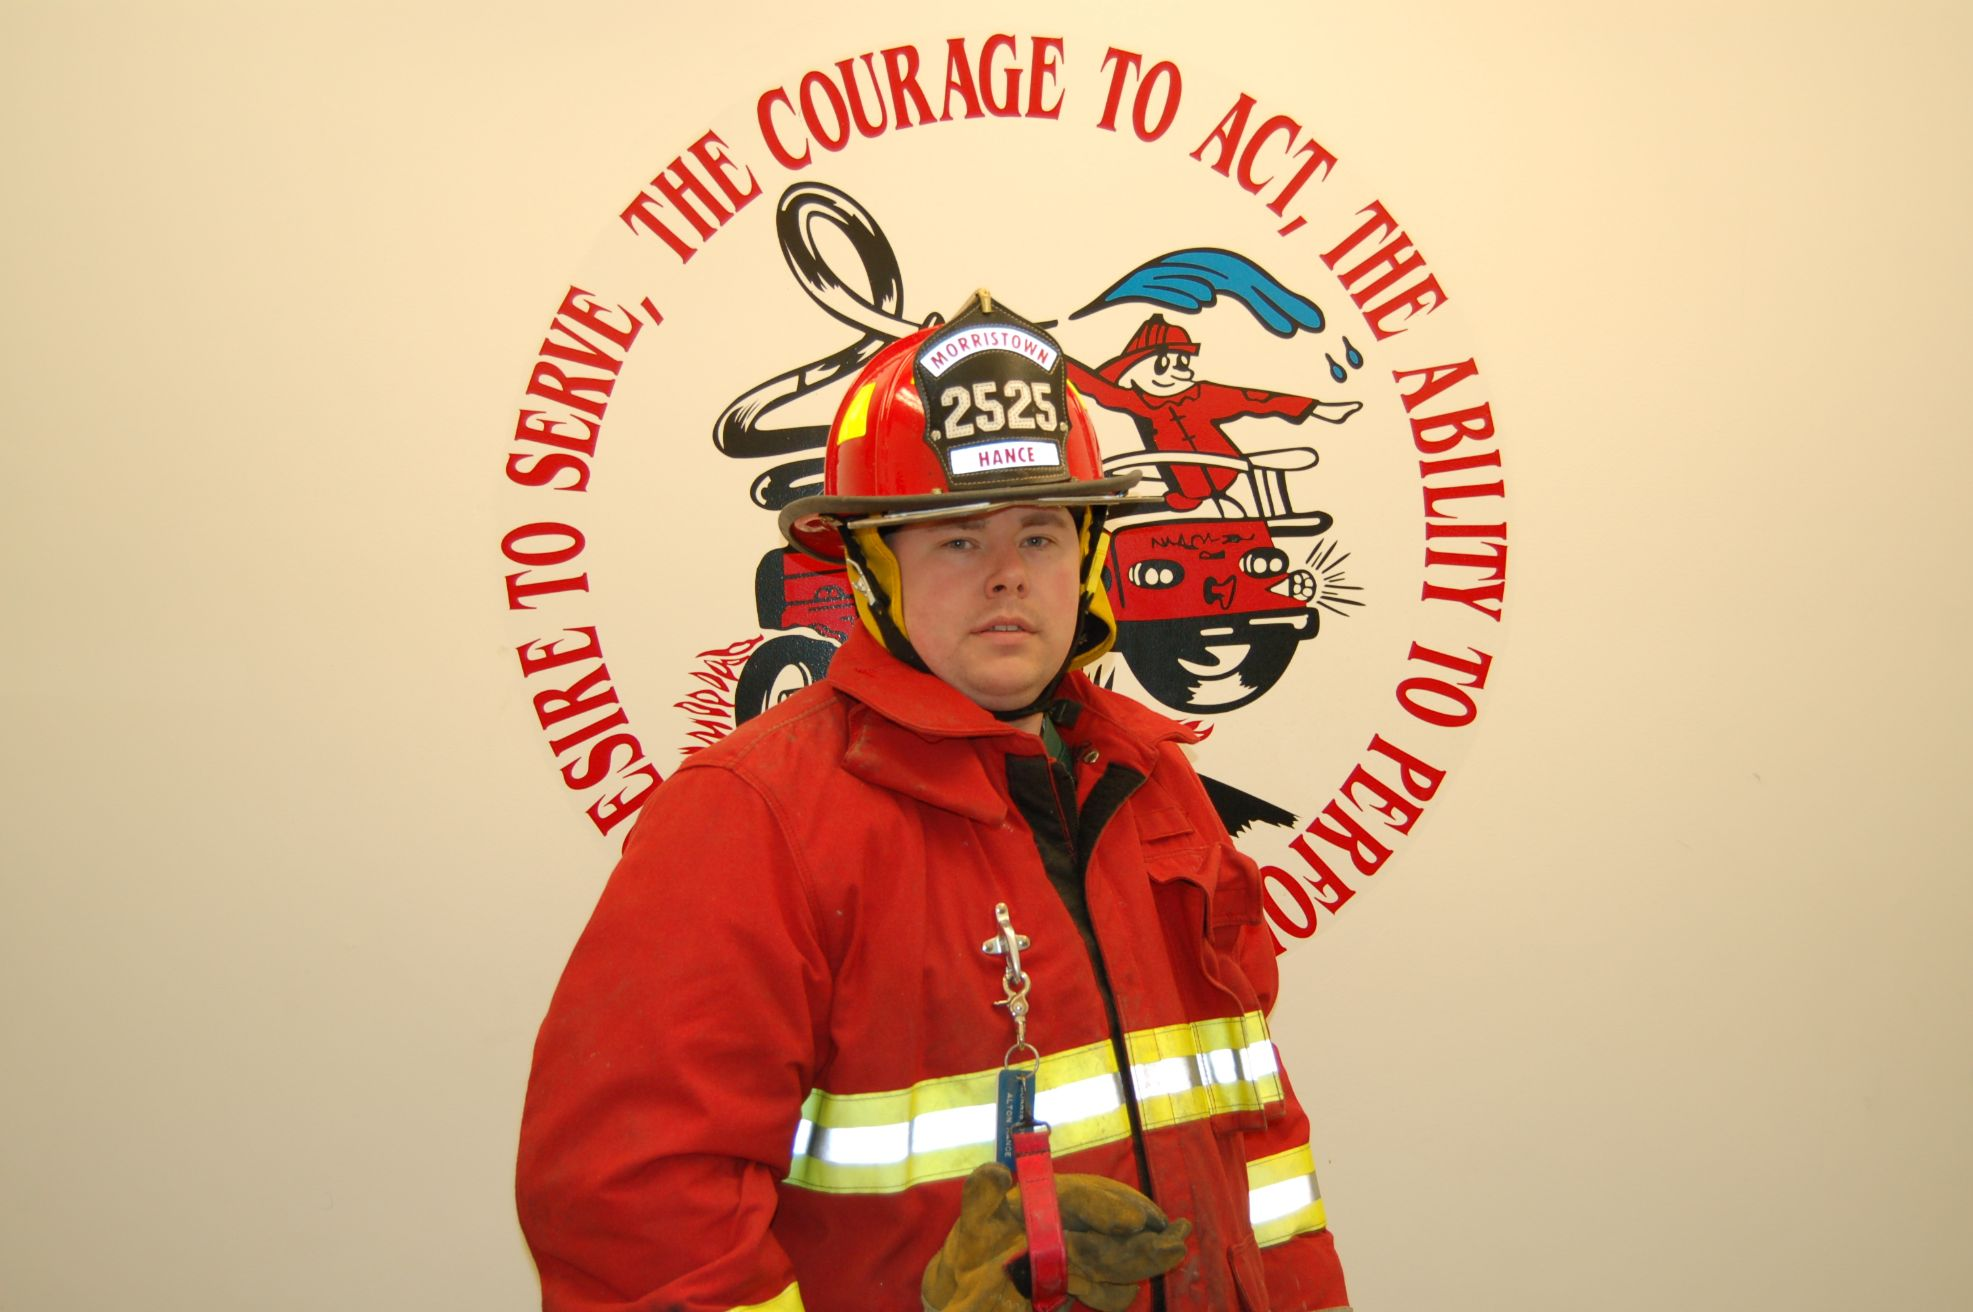 Fire Fighter Sonny Hance